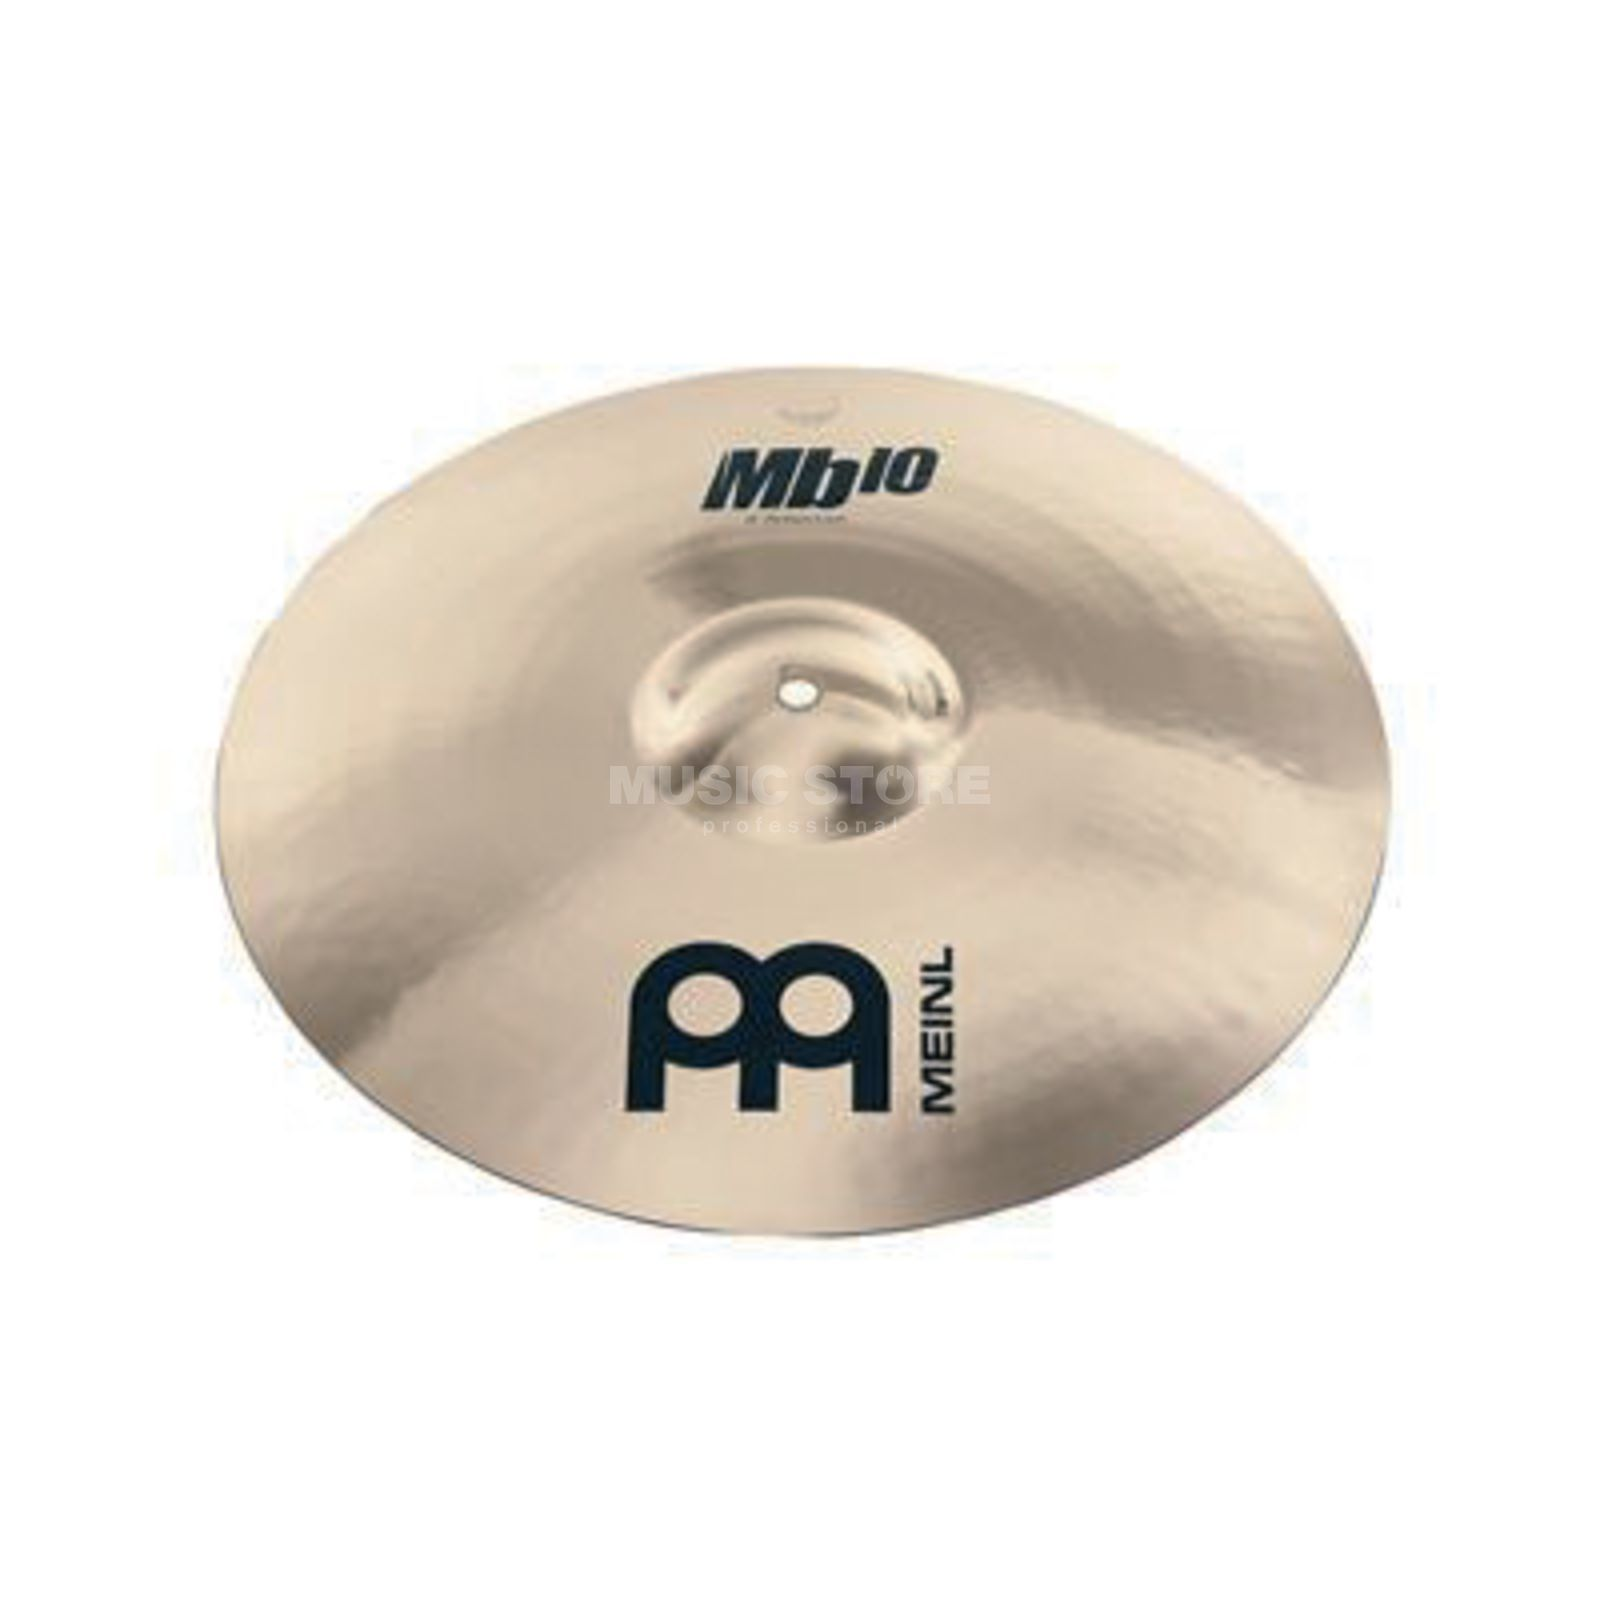 "Meinl MB10 Thin Crash 16"" MB10-16TC-B, Brilliant Finish Productafbeelding"